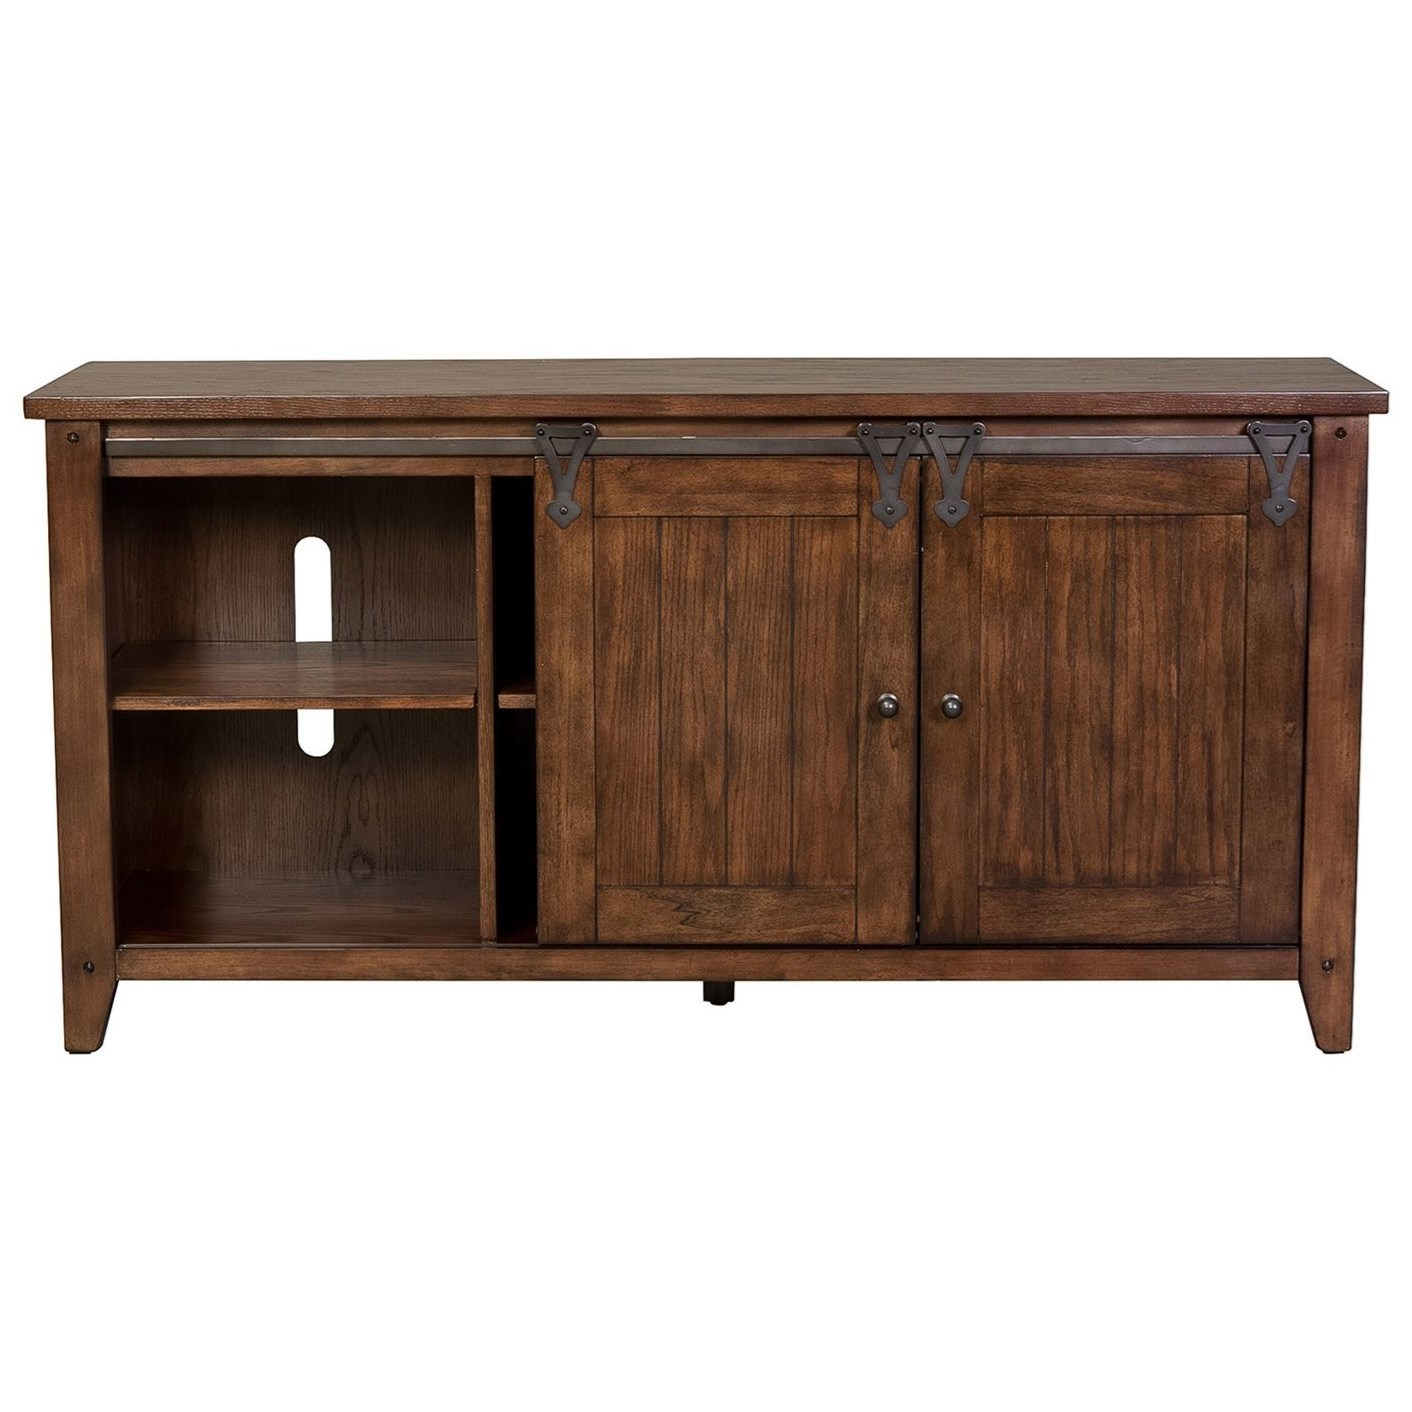 Laney CT TV Console by Libby at Walker's Furniture